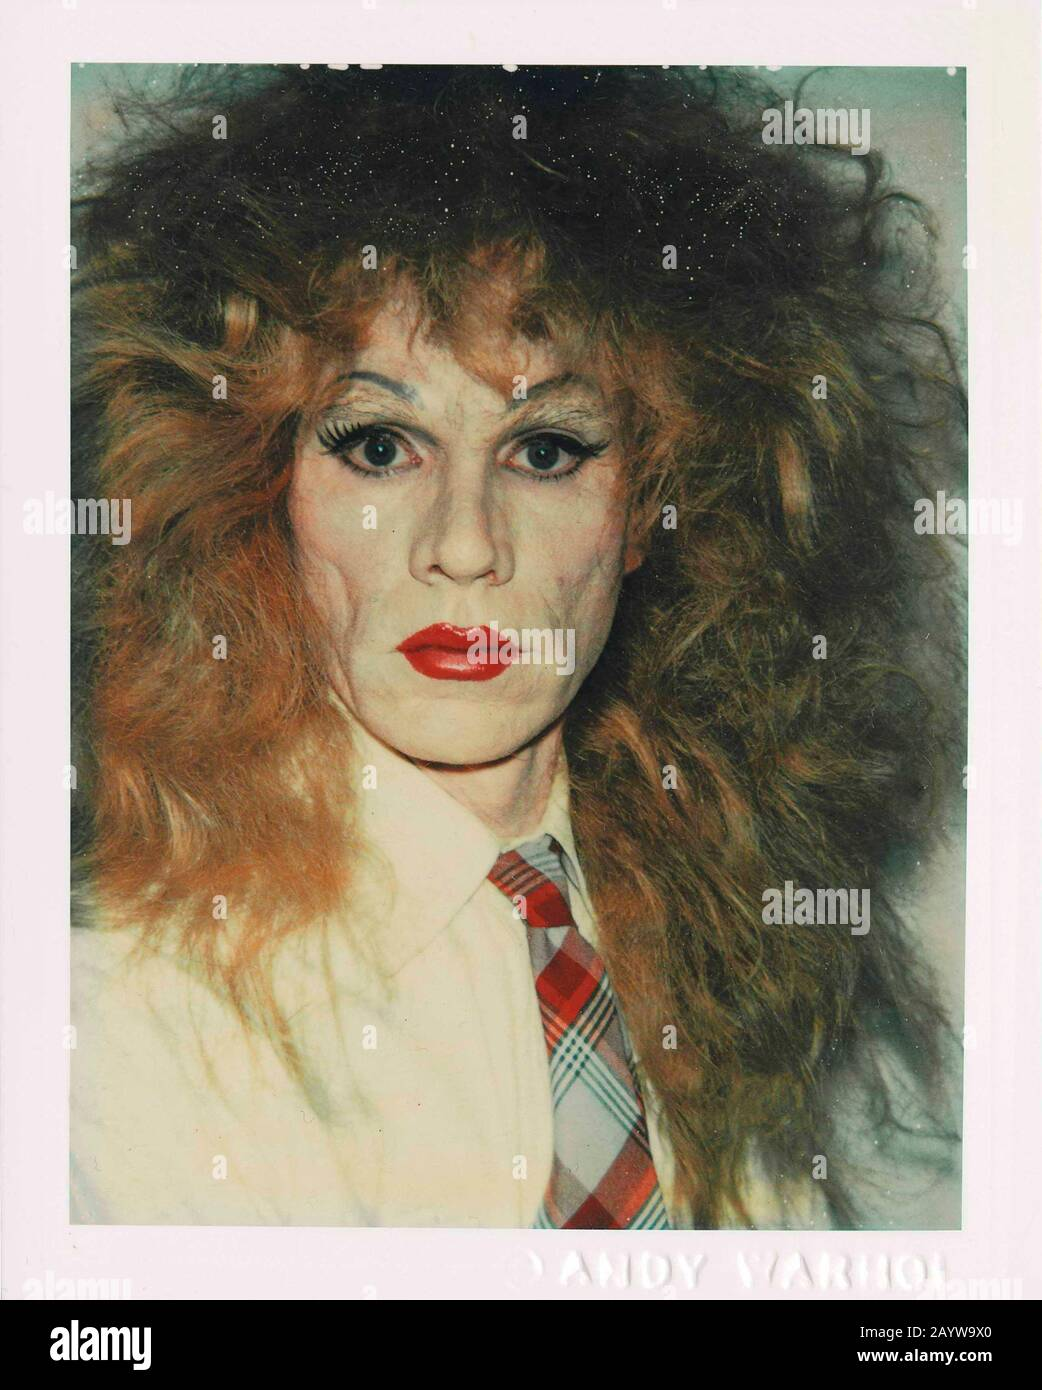 Self Portrait In Drag Museum Private Collection Author Andy Warhol Stock Photo Alamy